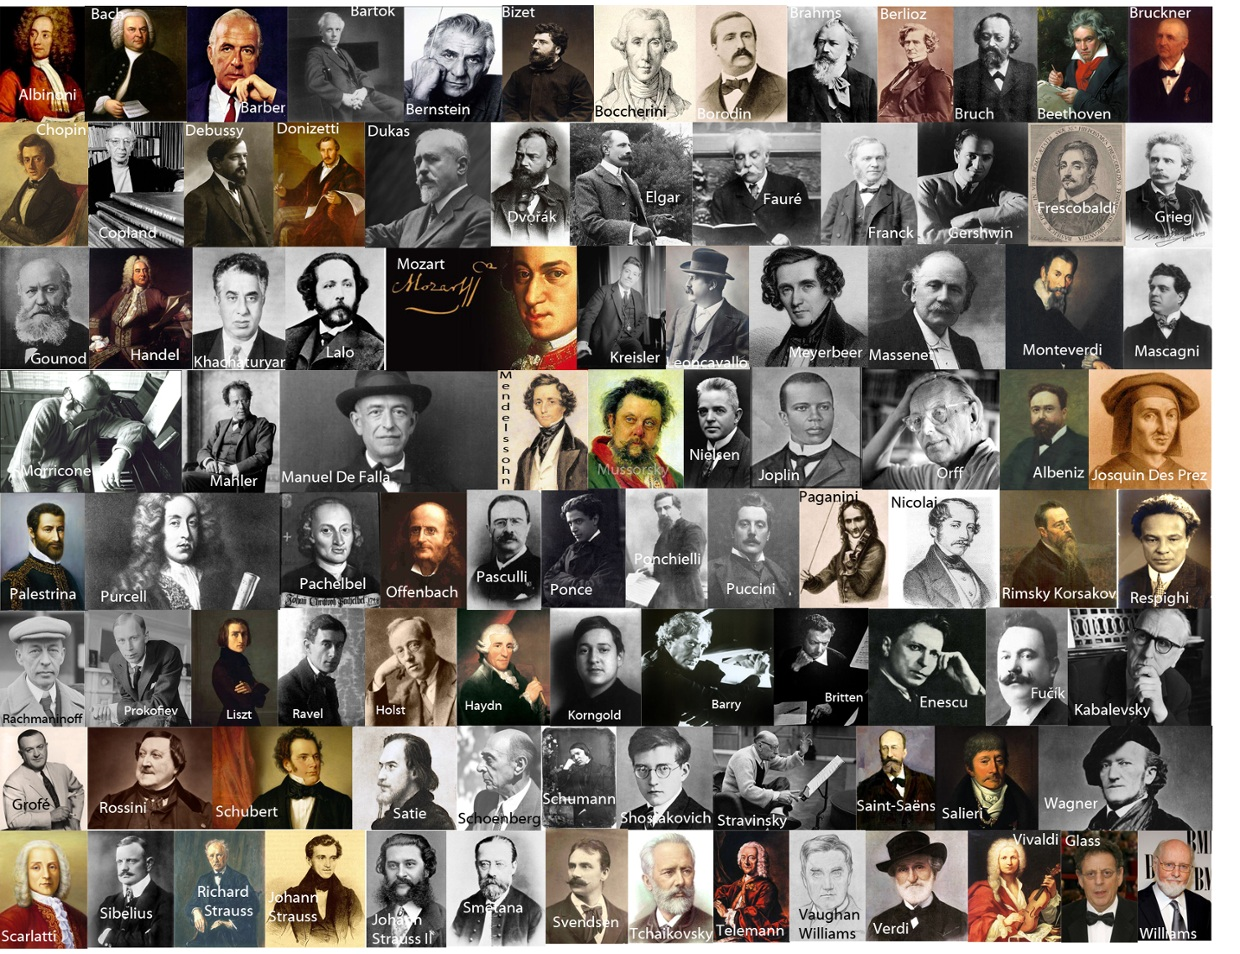 Famous Classical Music Composers Linked to YouT